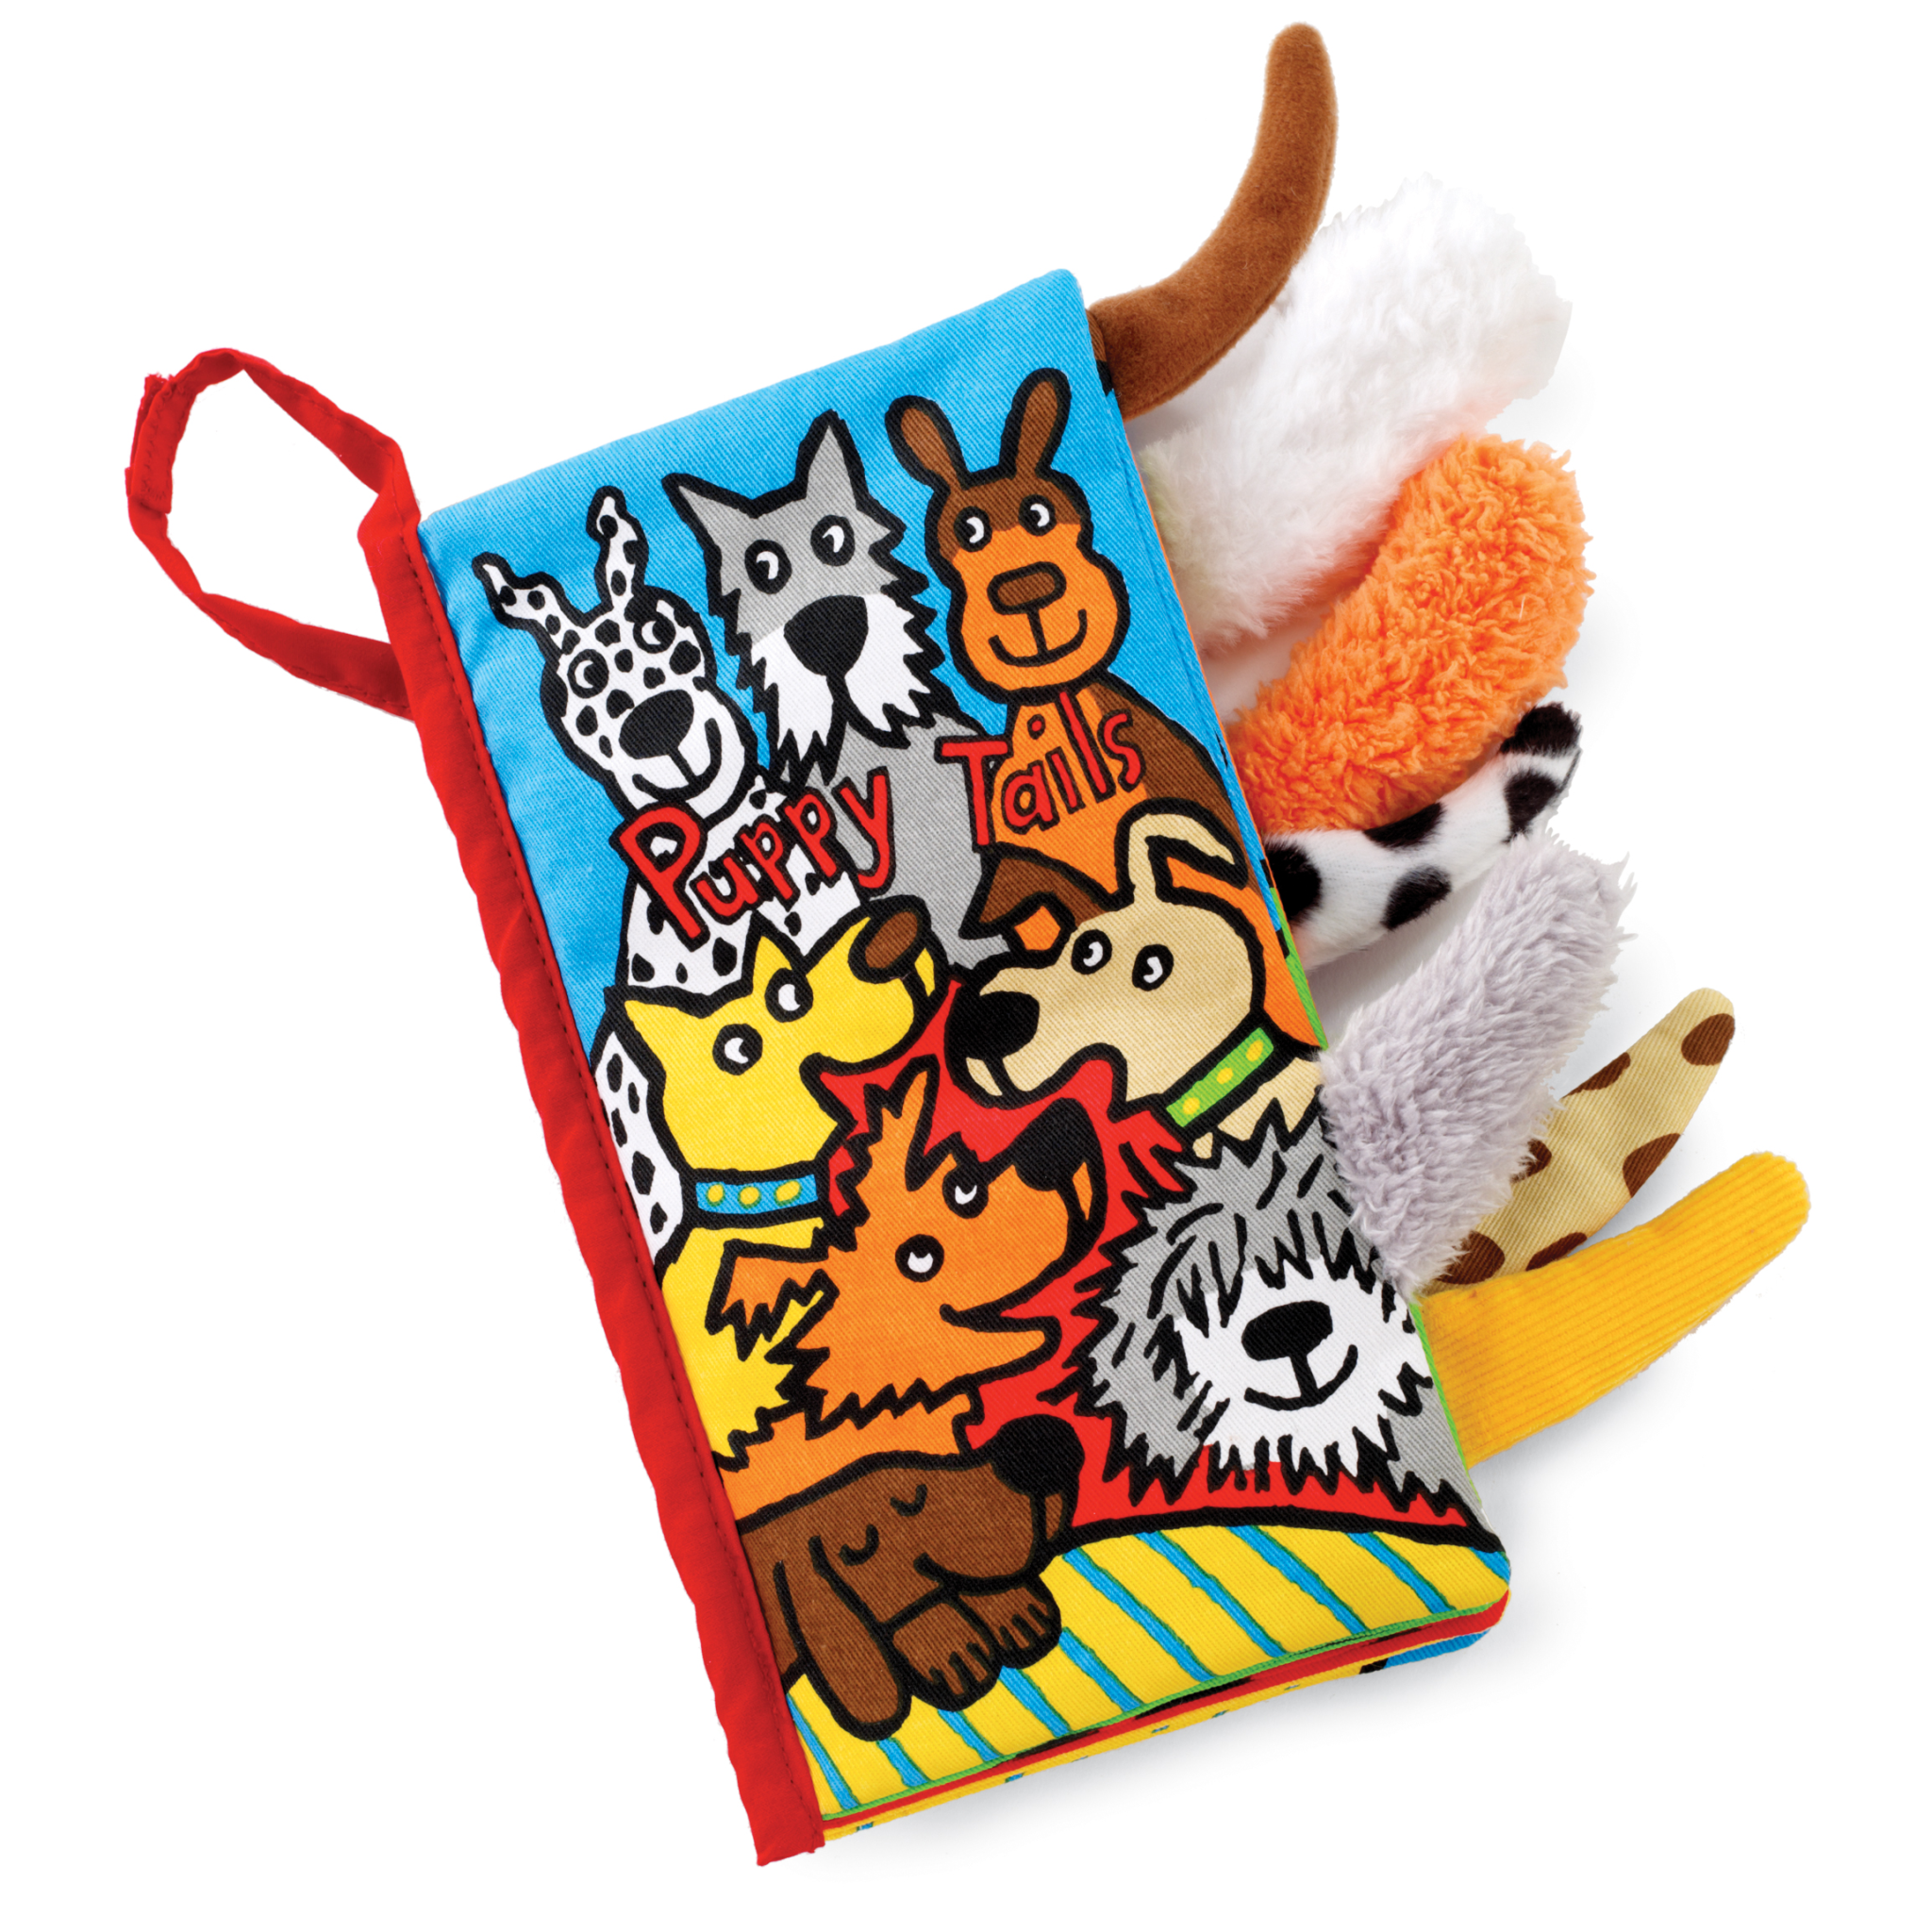 Jellycat Puppy Tails Activity Book